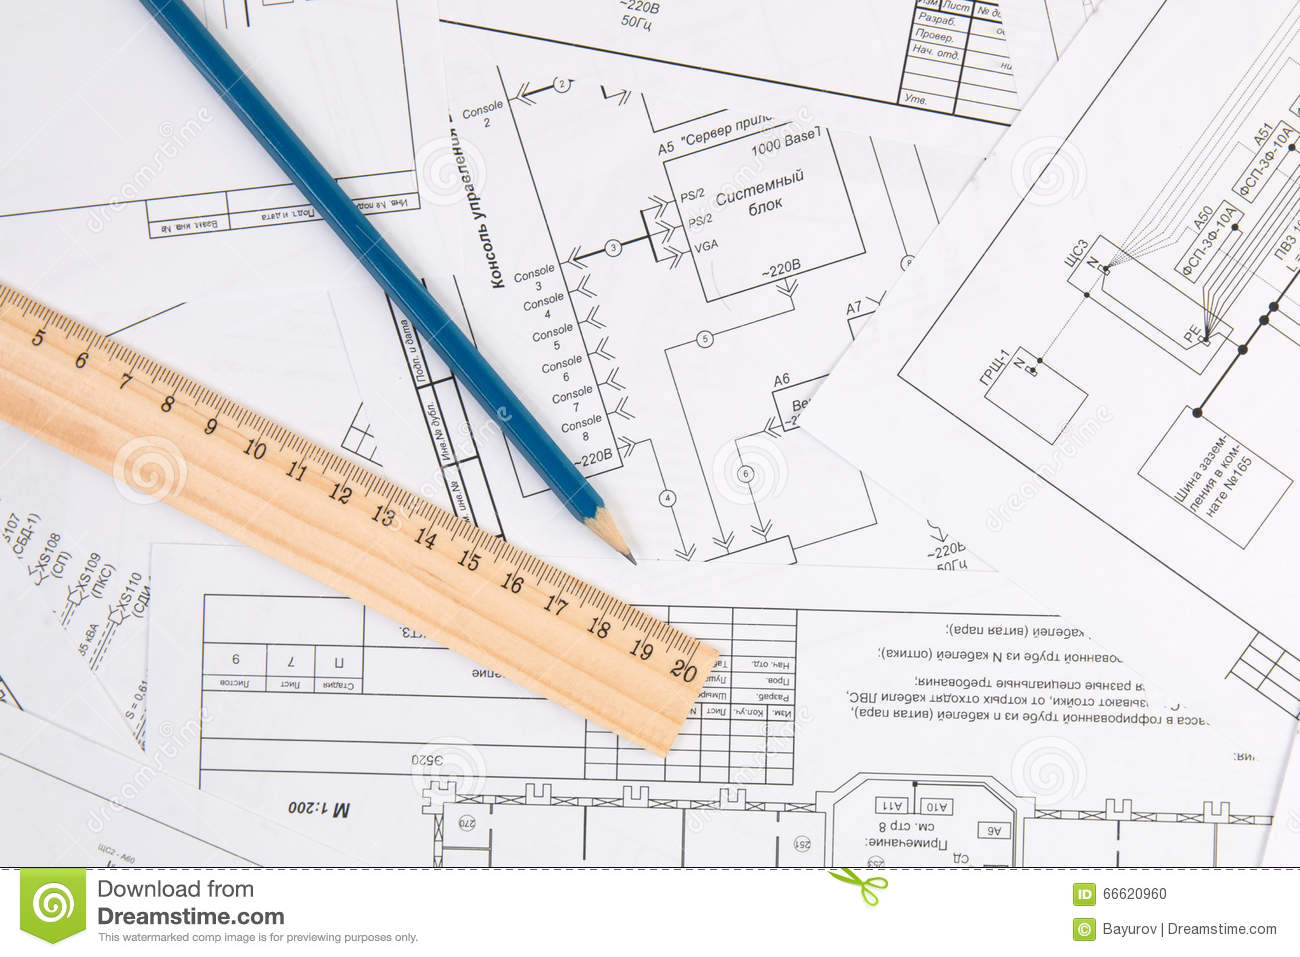 Electrical engineering drawings, pencil and ruler